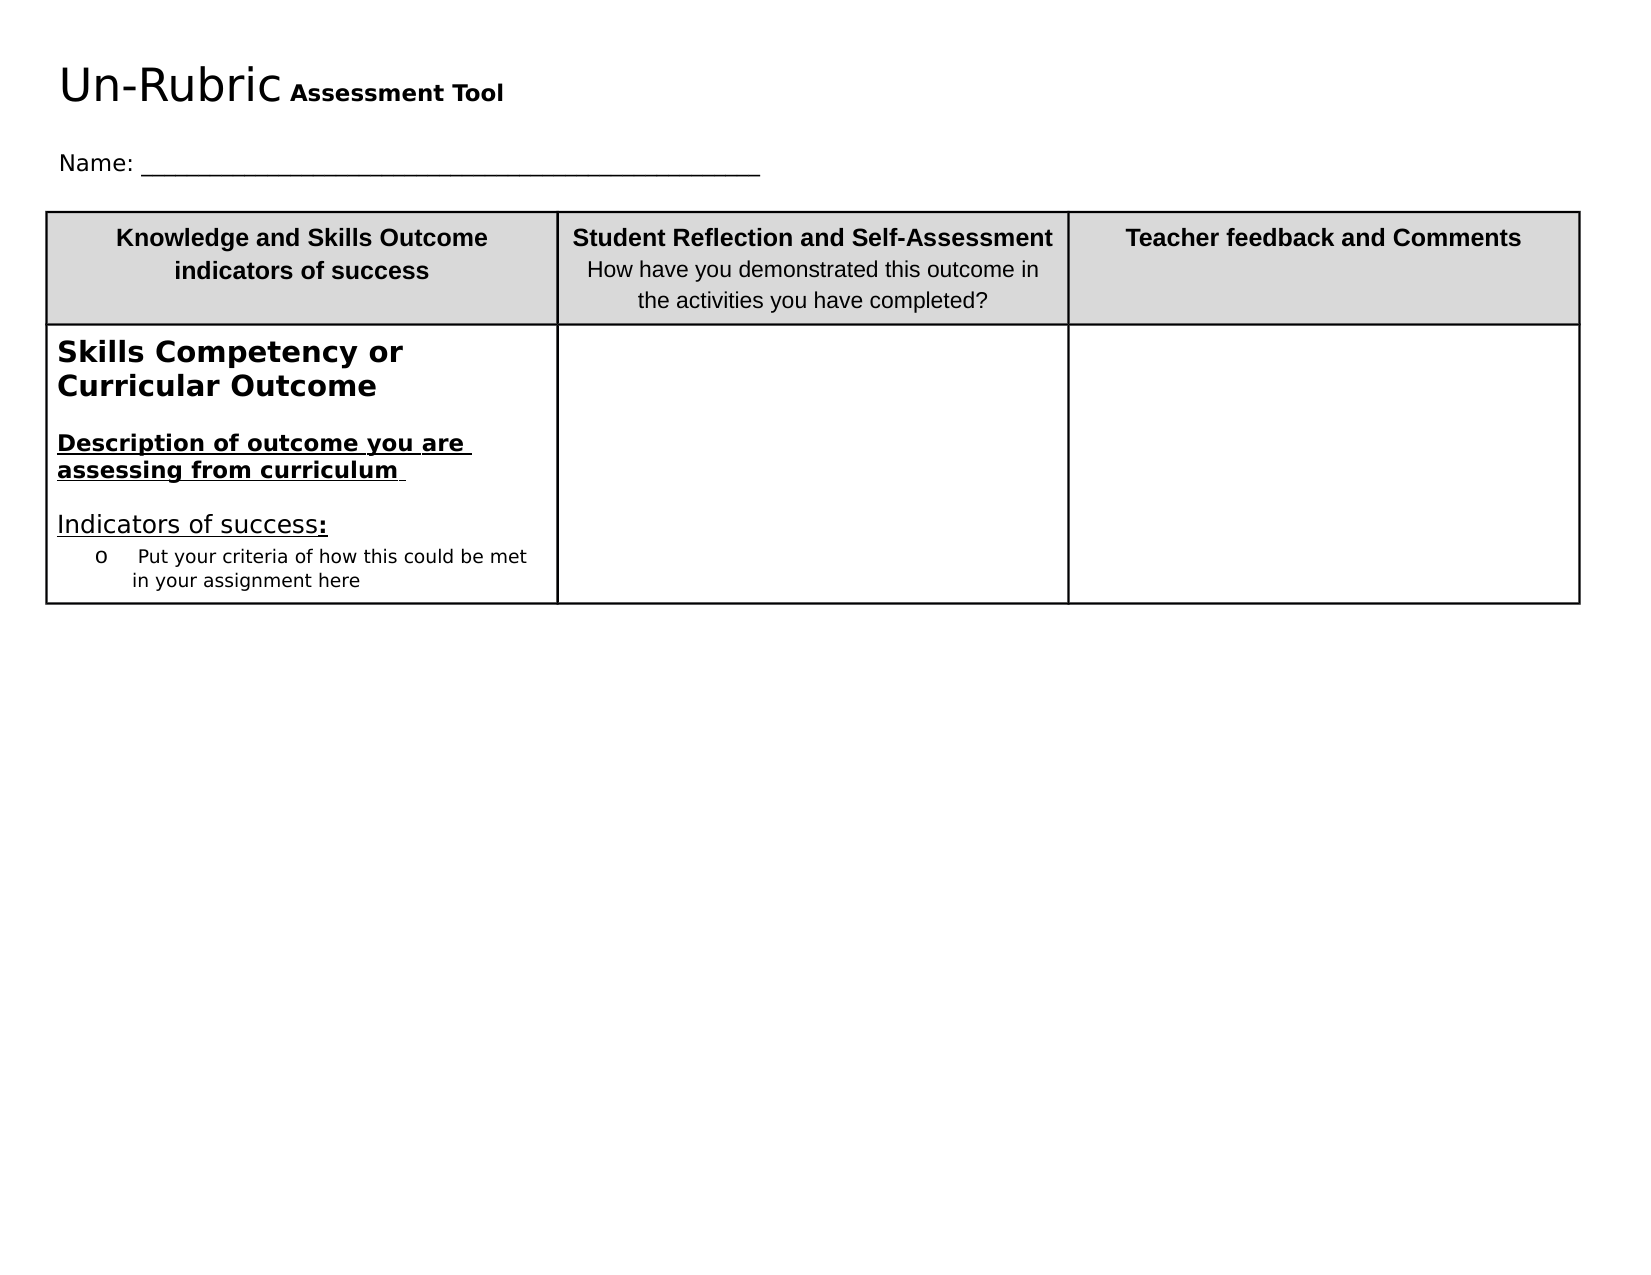 UnRubric assessment Tool Resource Preview